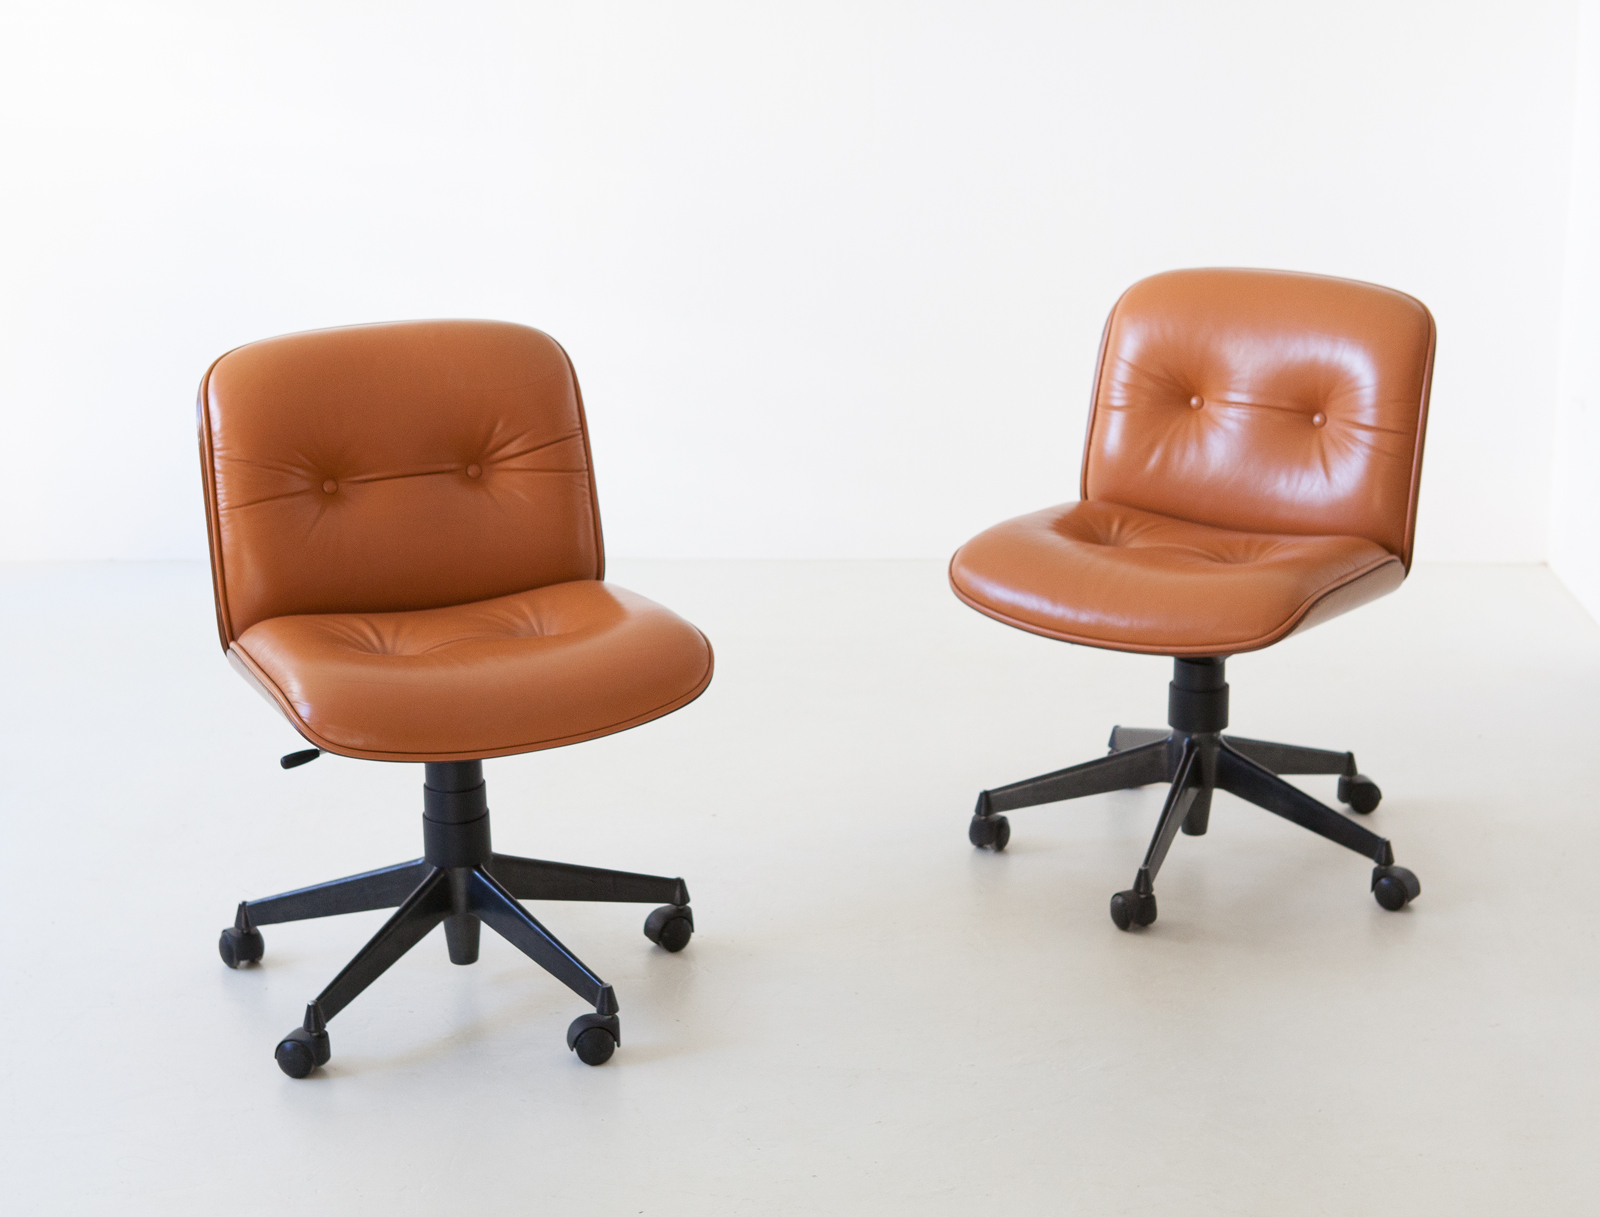 1960s-swivel-desk-chairs-by-ico-parisi-for-mim-4-SE317